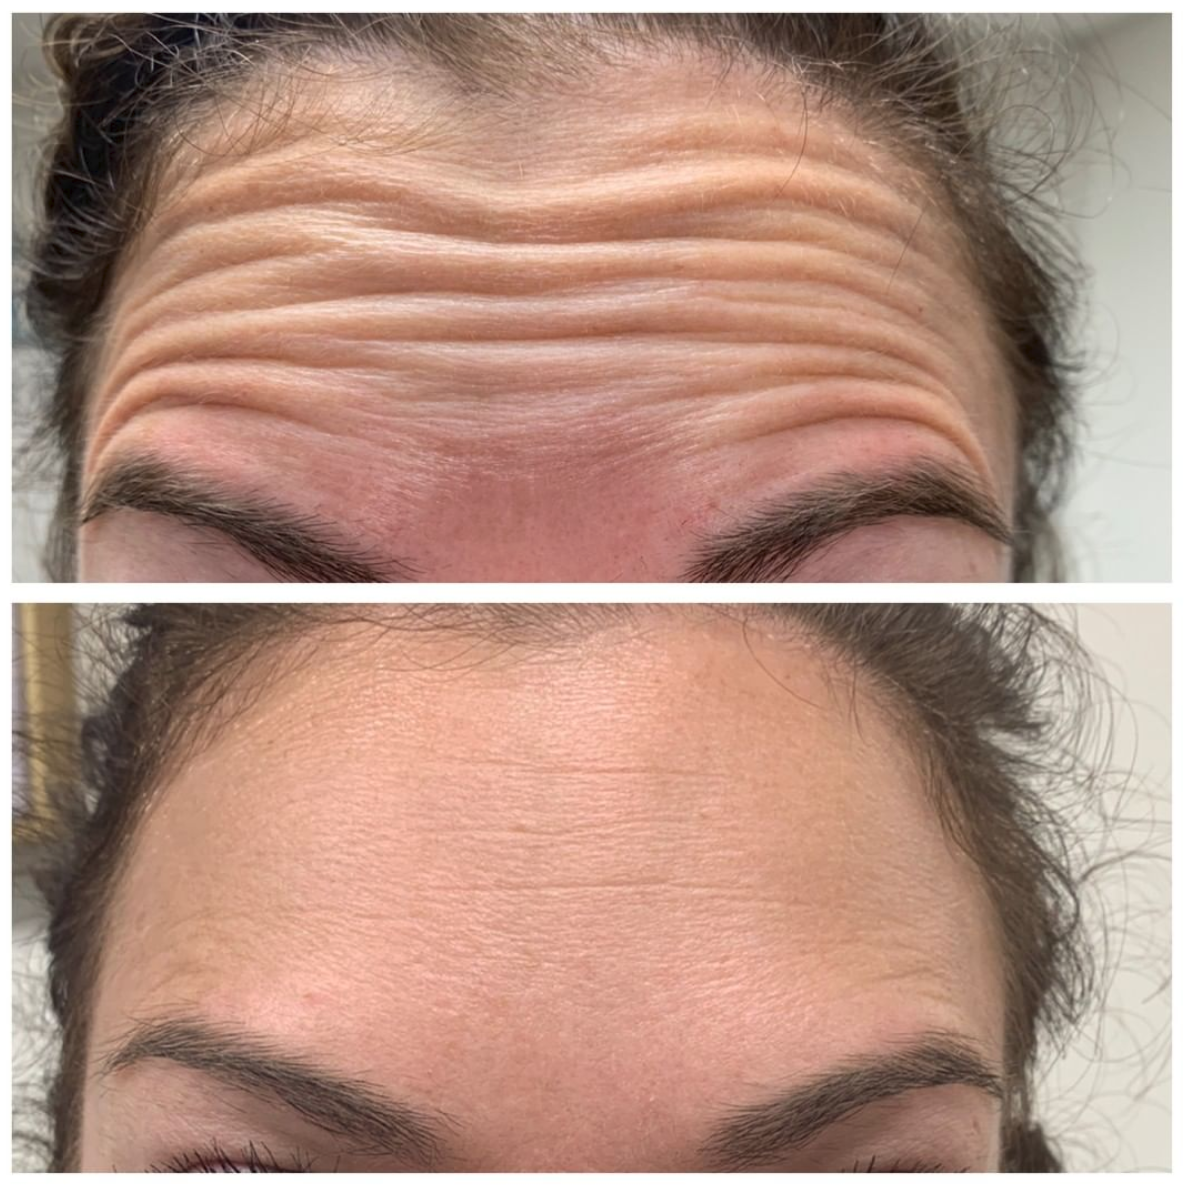 Botox before and after photos, forehead lines, in Lexington, MA